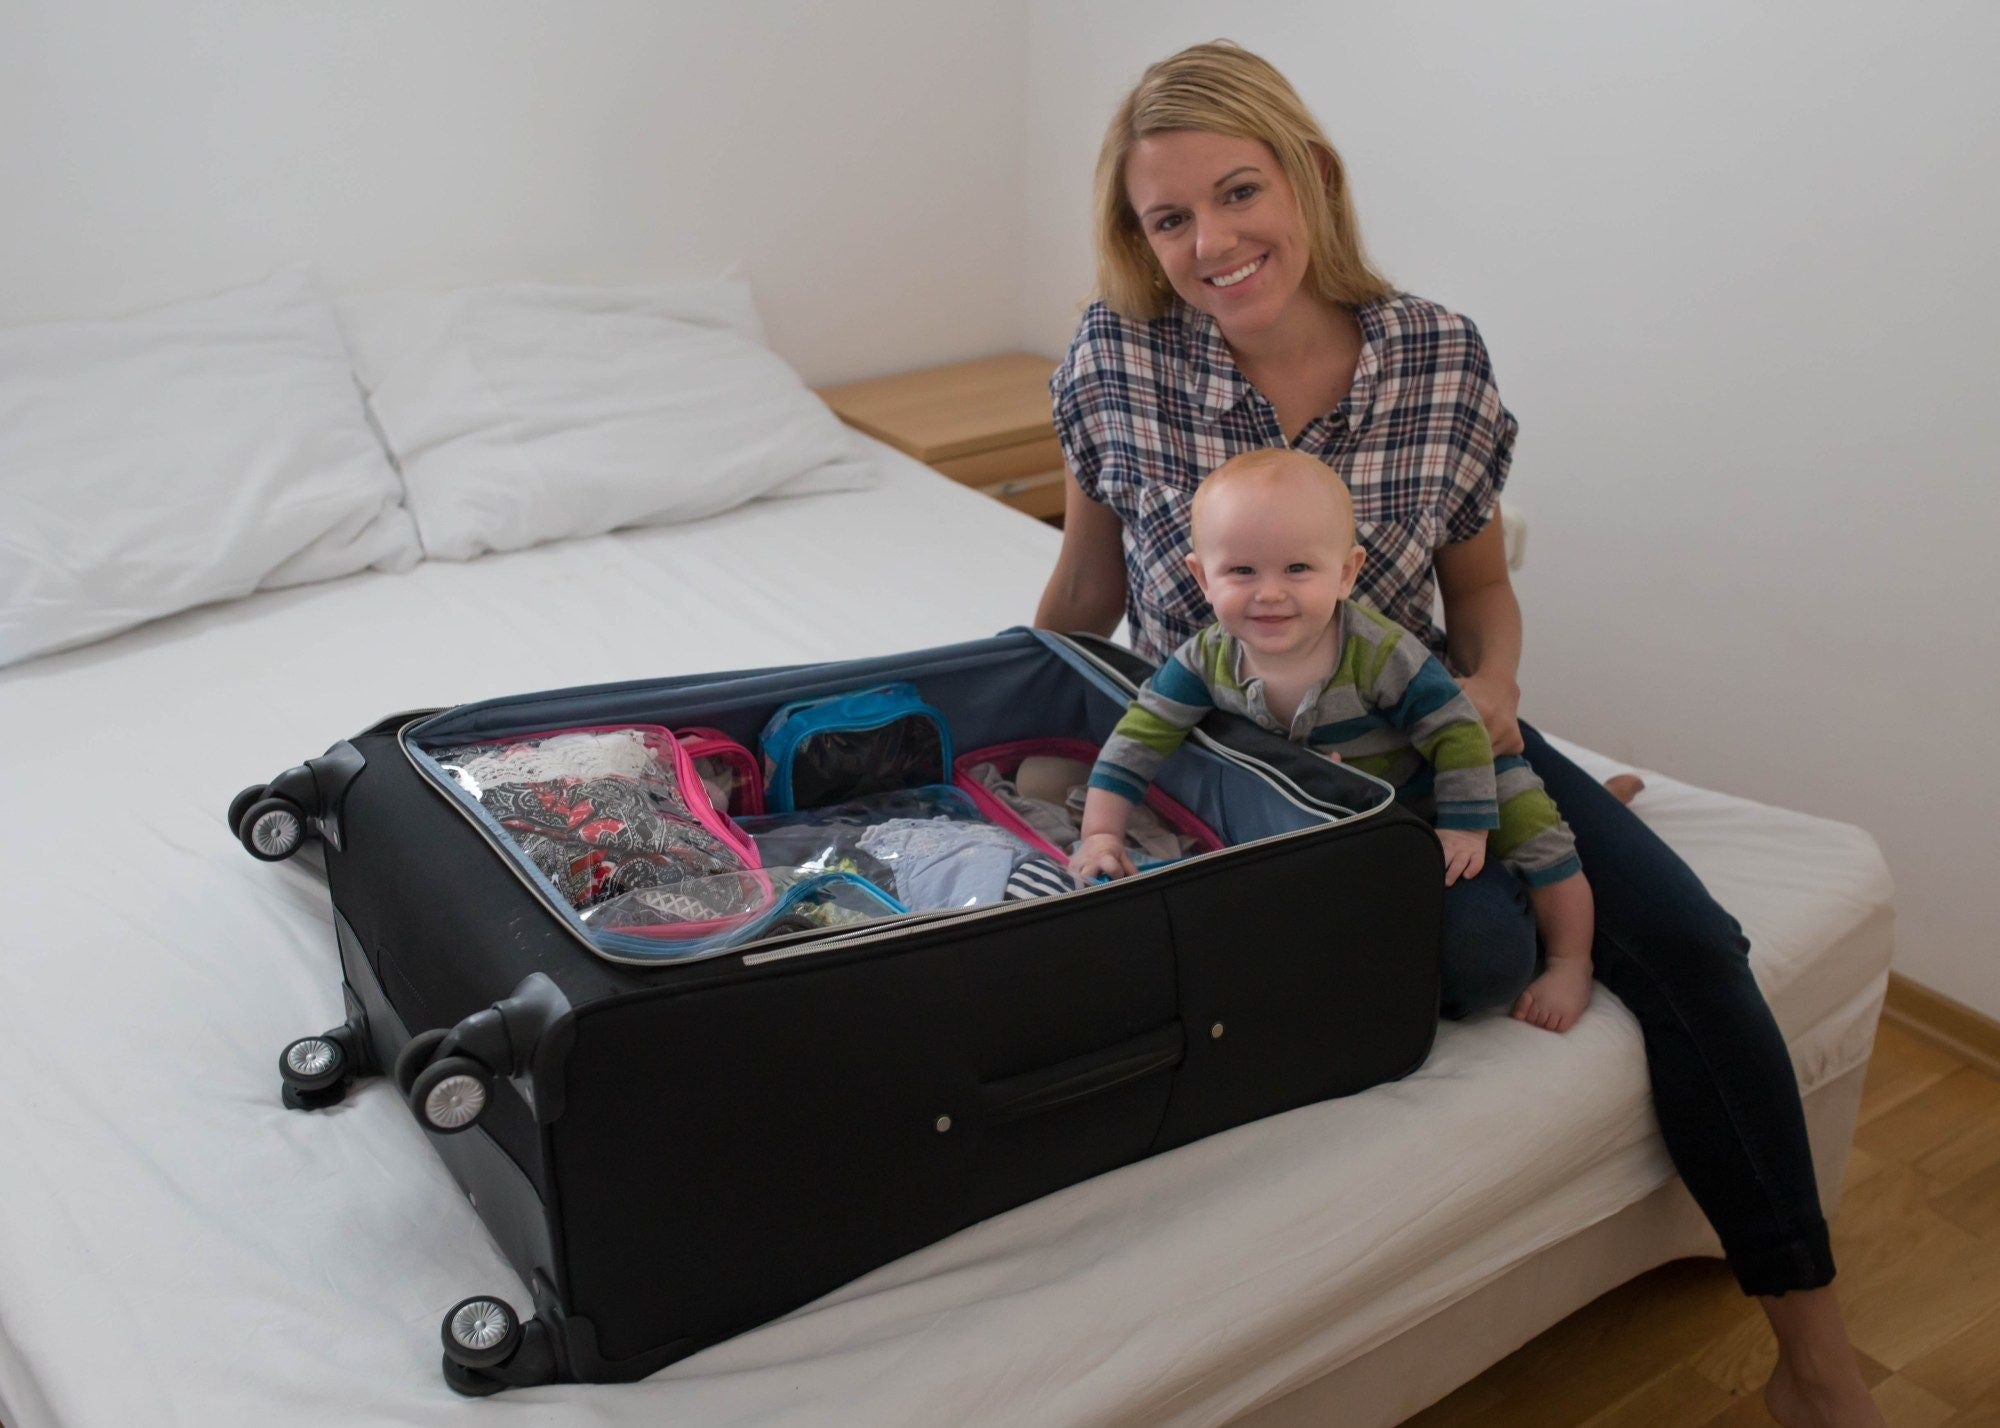 Mommy and baby packing for trip with Complete Bundle